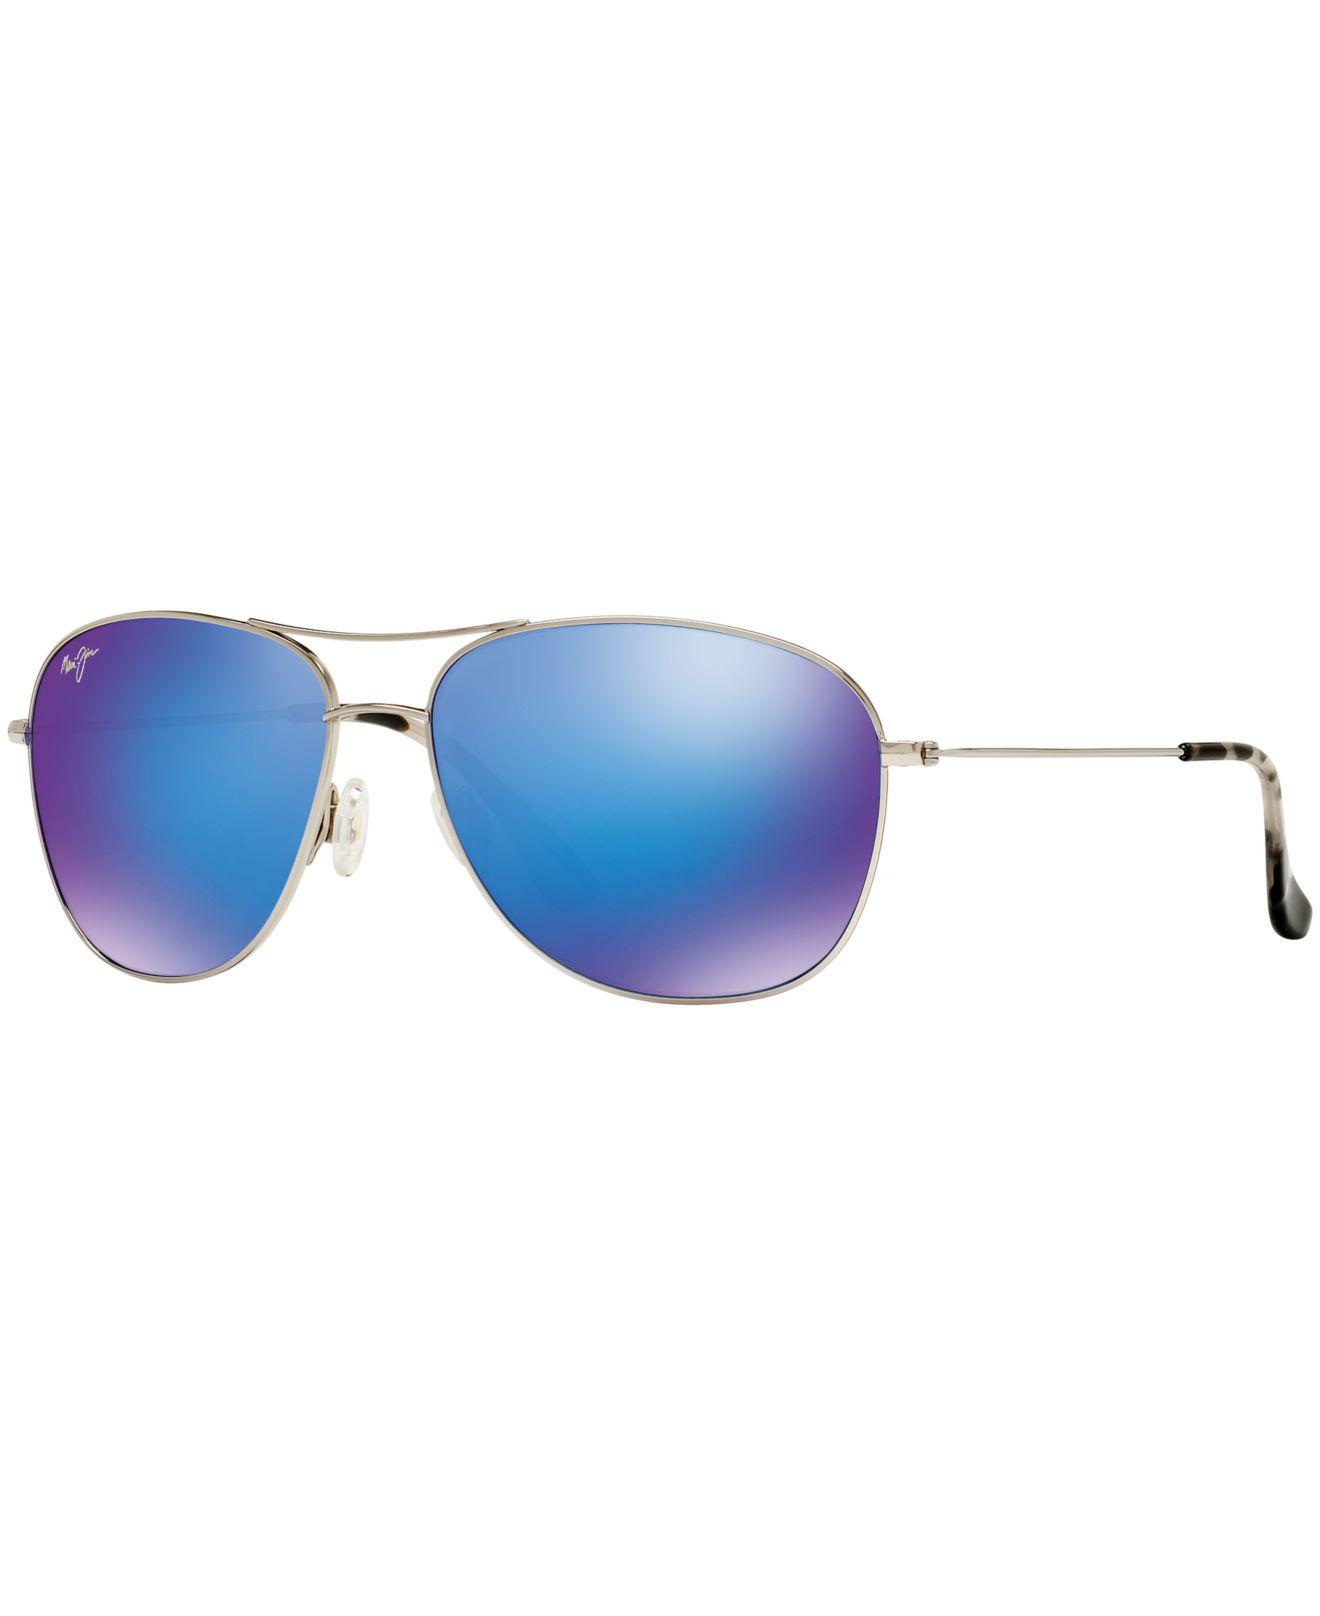 Lyst - Maui Jim 247 Cliffhouse in Metallic 999e24283ae2